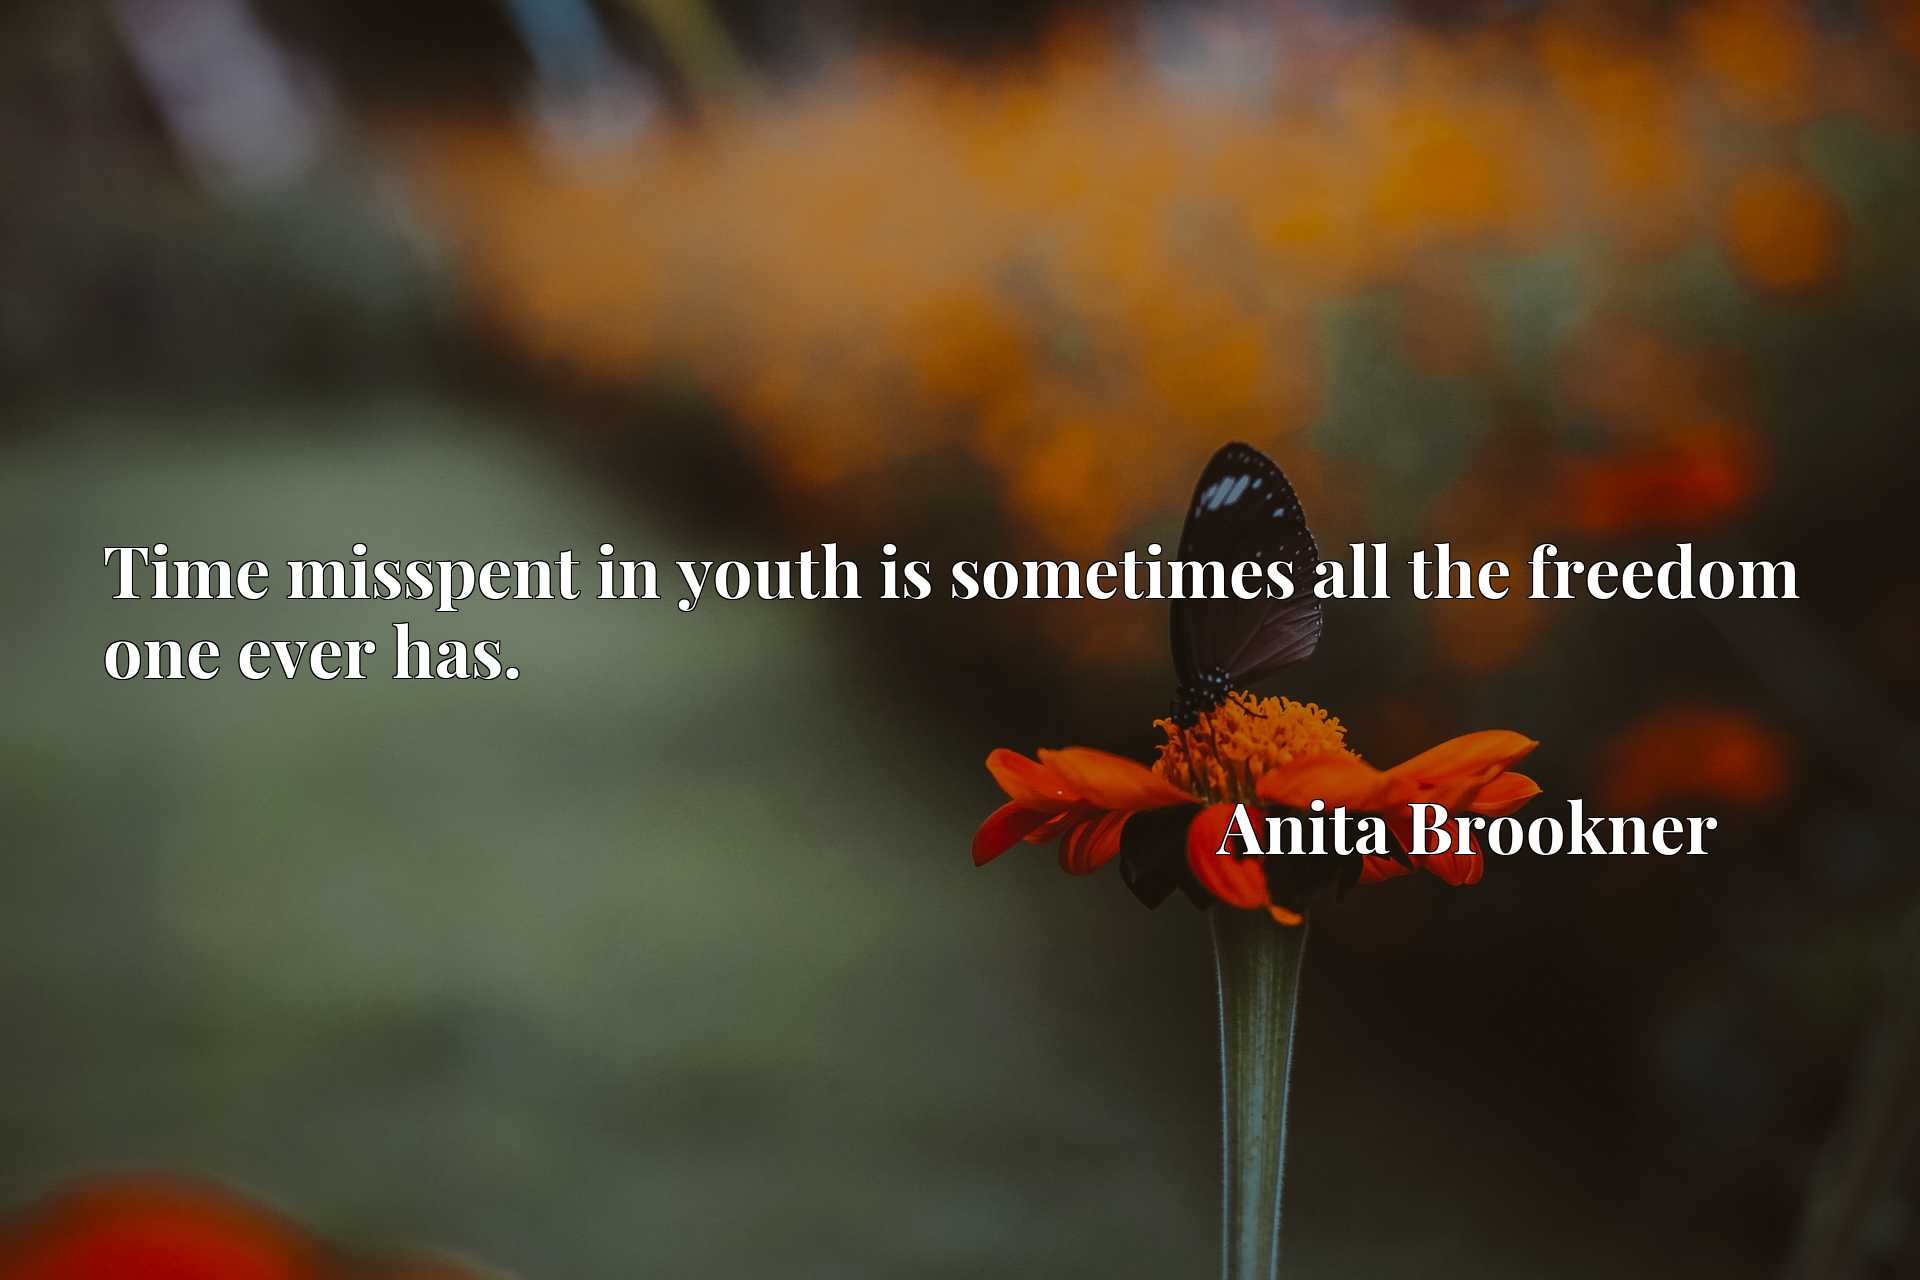 Time misspent in youth is sometimes all the freedom one ever has.